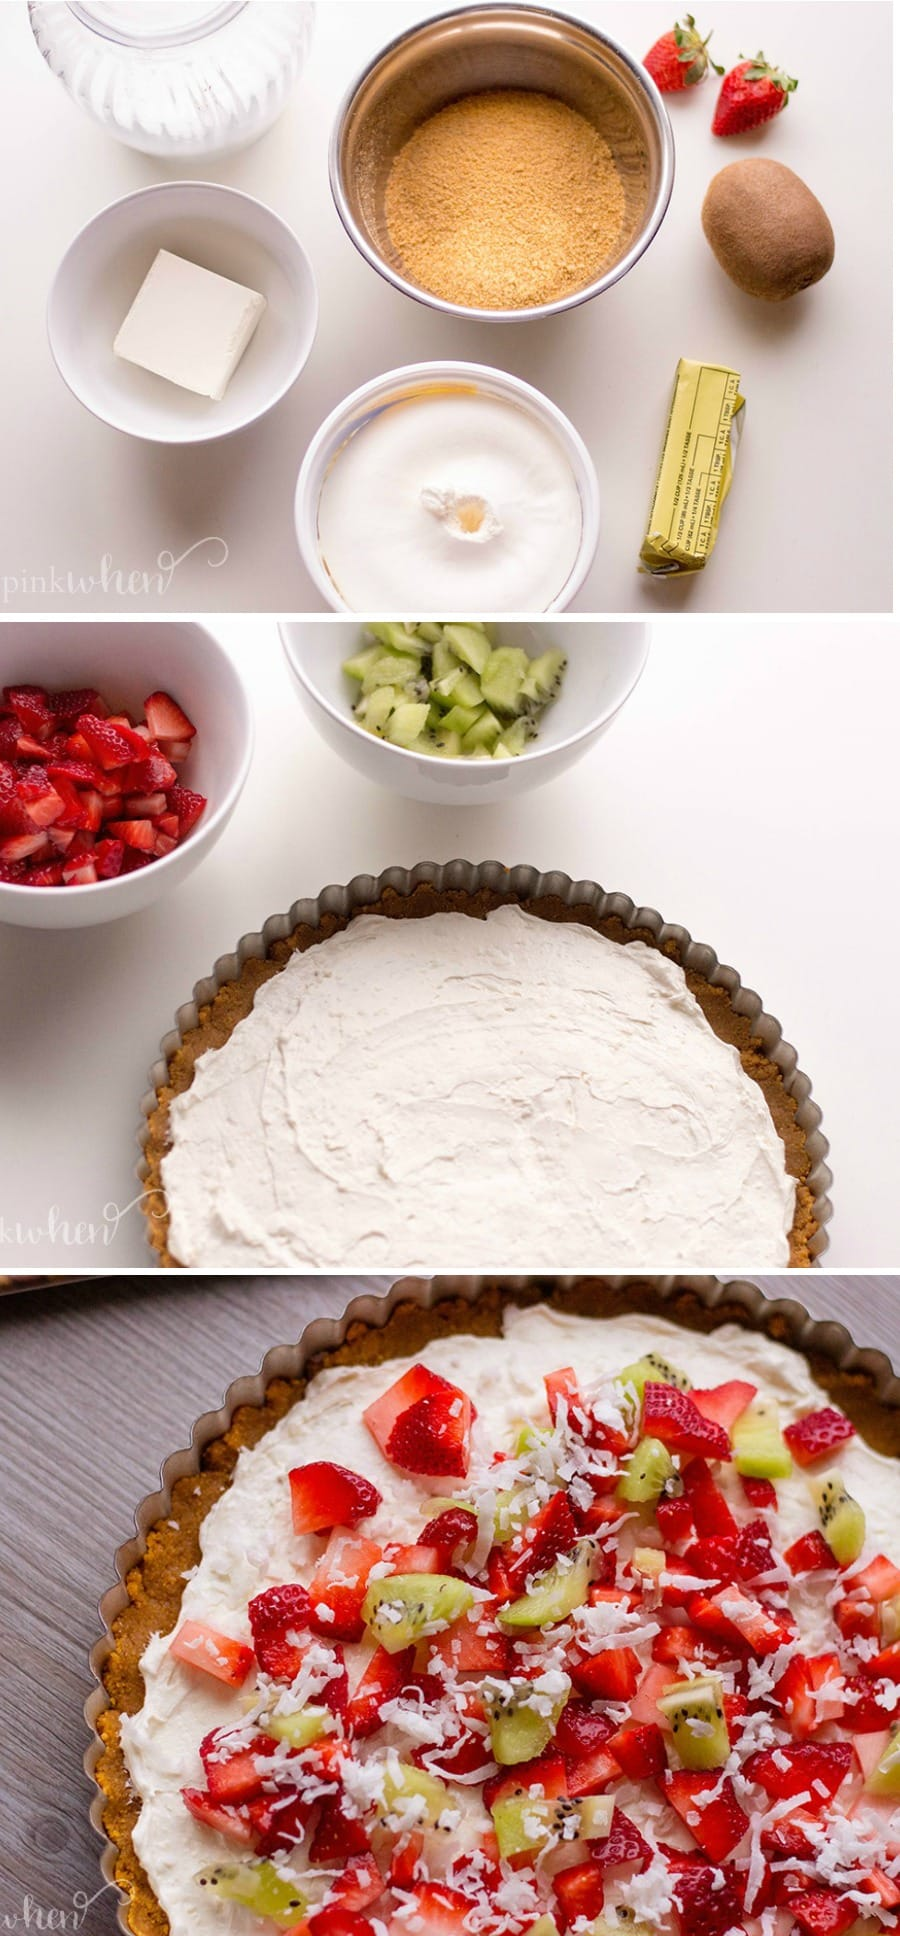 The Ultimate Dessert Fruit Pizza Recipe. Friends and family will be excited for this delicious treat! #fruitpizza #fruitpizzarecipe #dessertpizza #dessertideas